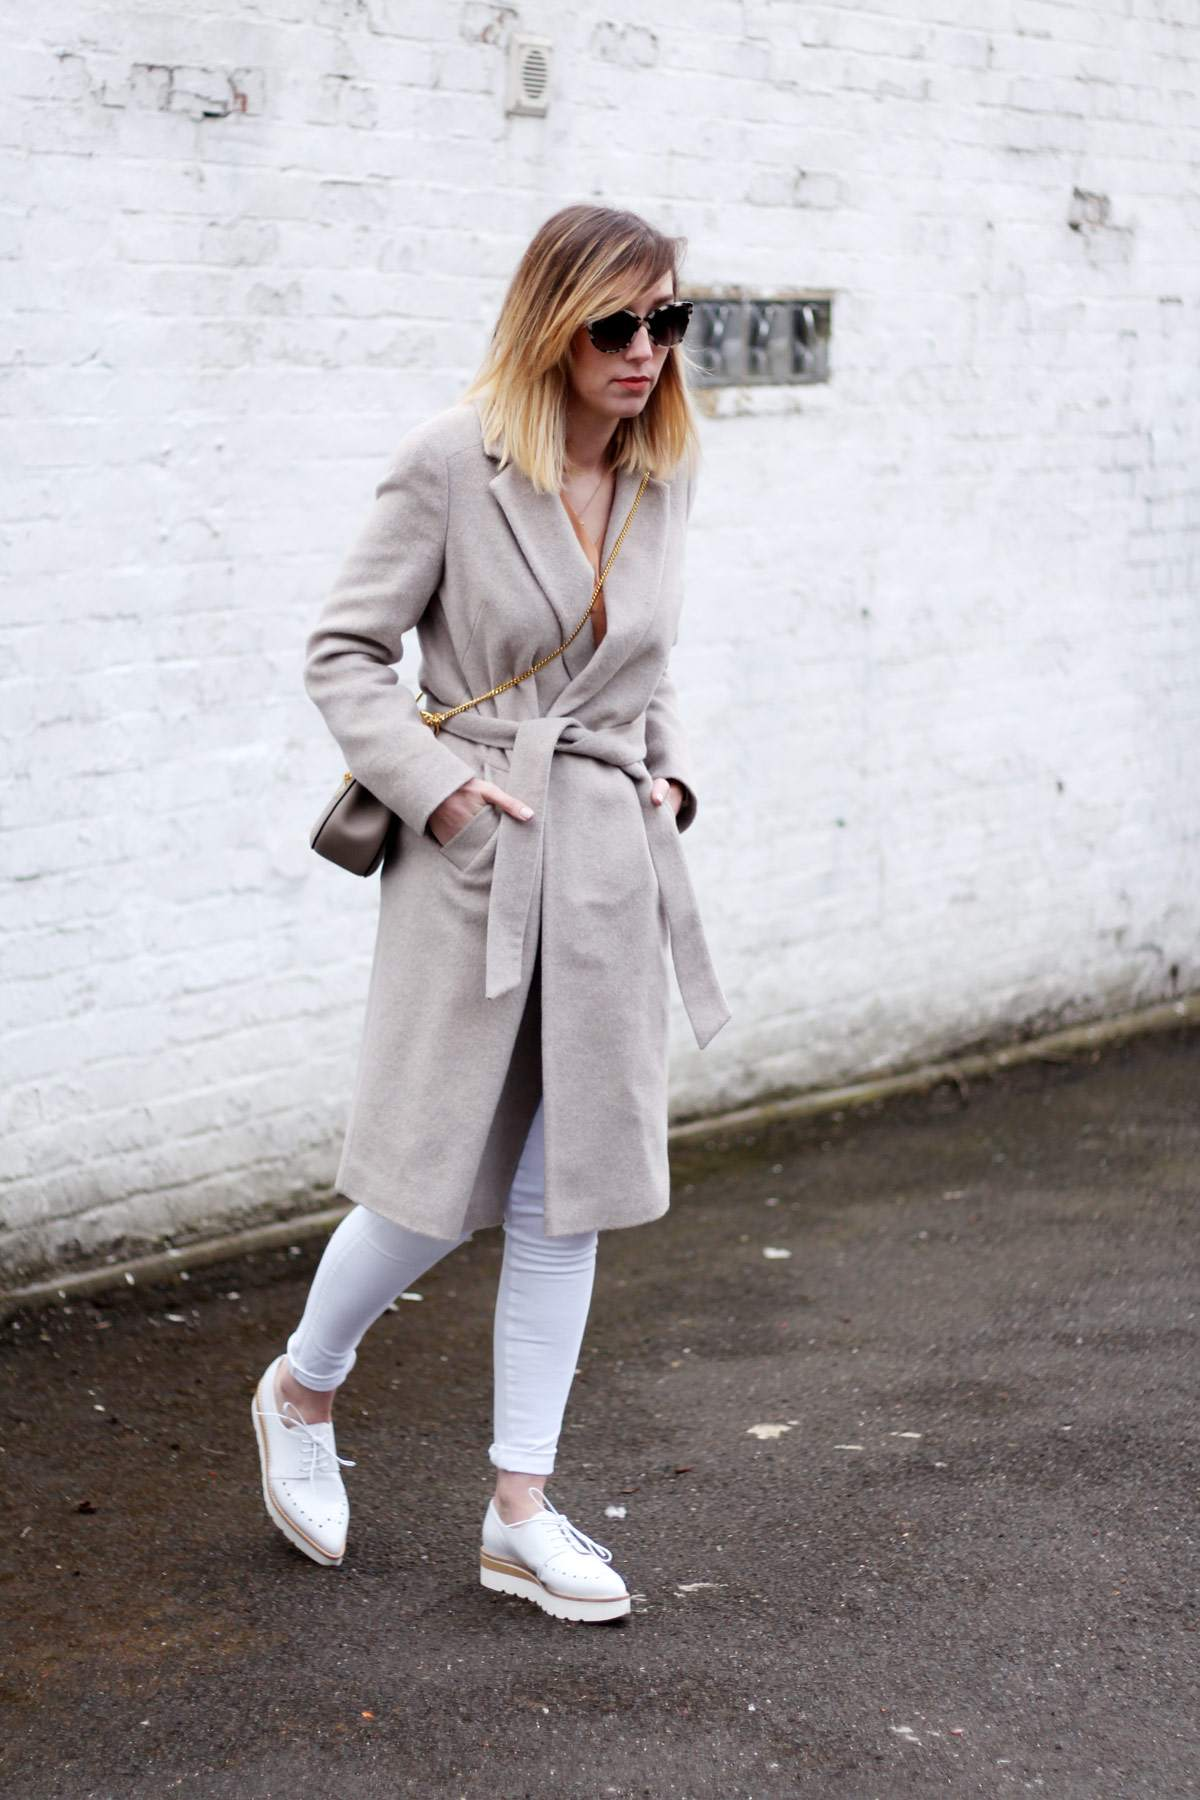 M&S-belted-coat-alberto-zago-brogue-shoes-chloe-drew-grey-hudson-white-jeans